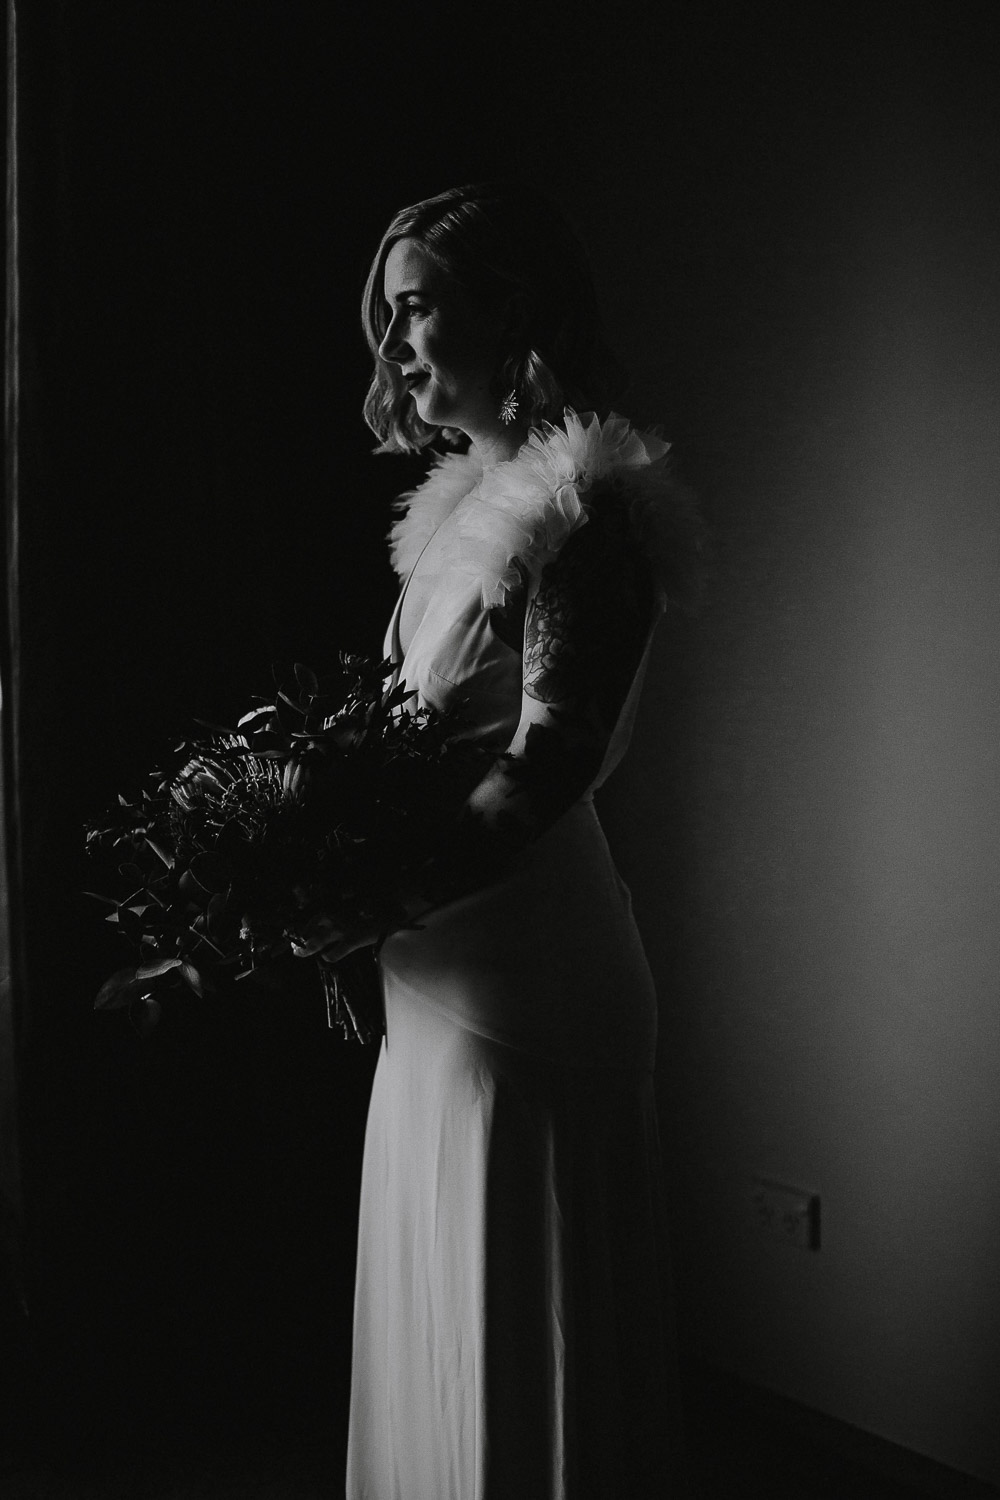 Alternative Tattooed bride in black and white photo hollywood glamour style